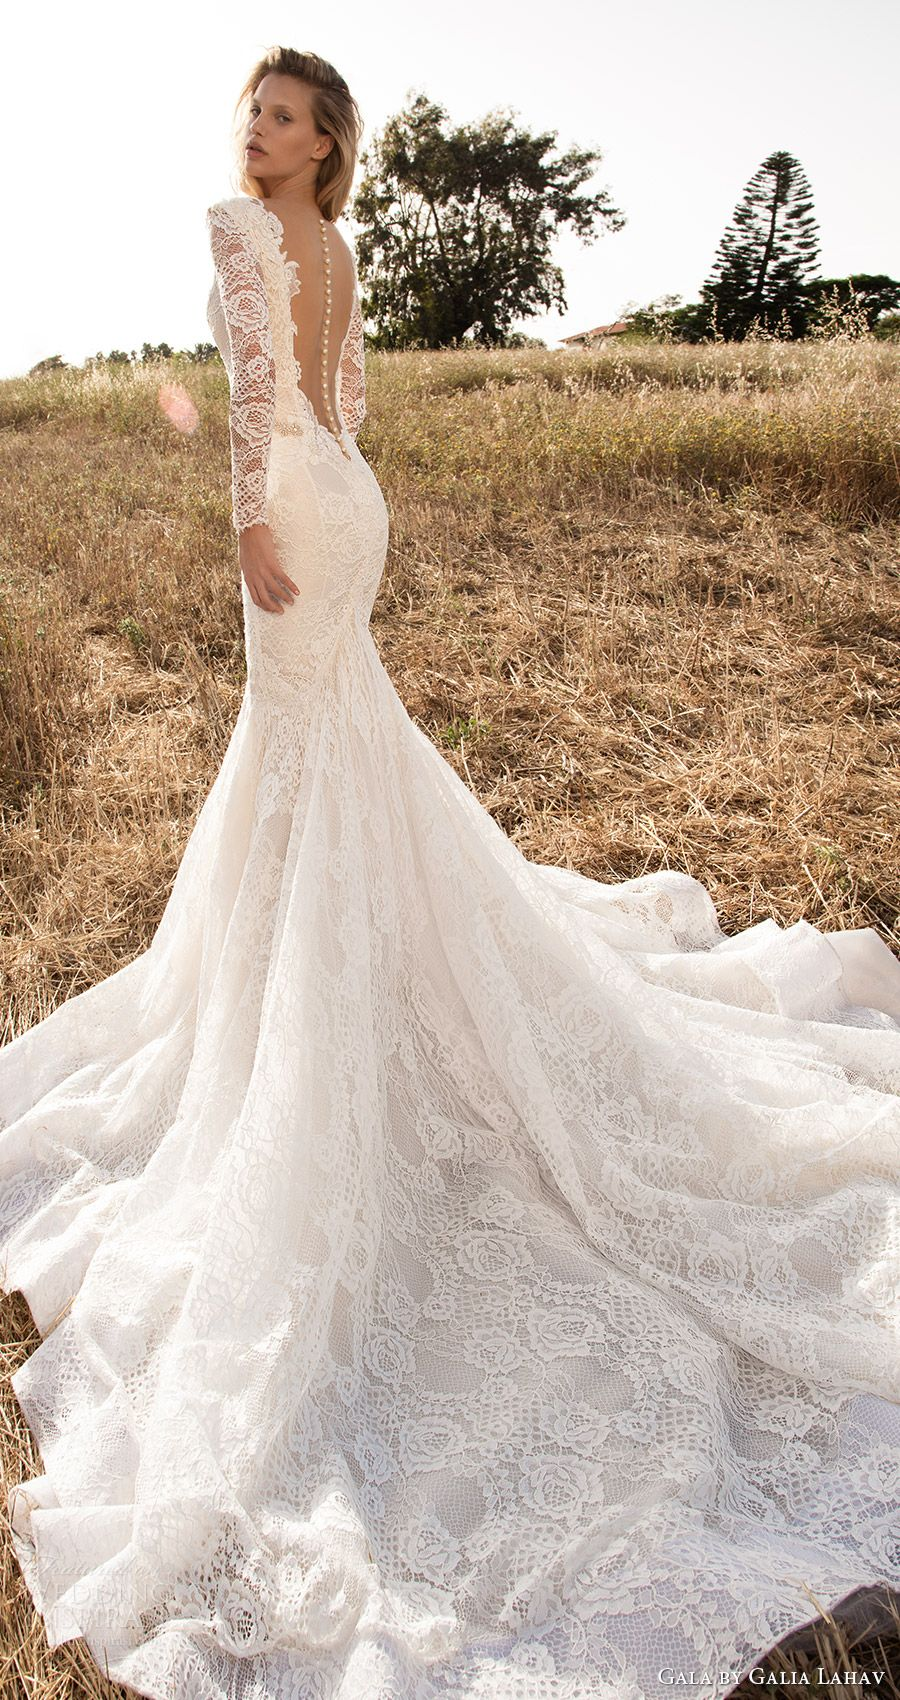 Gala by Galia Lahav Spring 2017 Wedding Dresses — GALA No. II Bridal ...